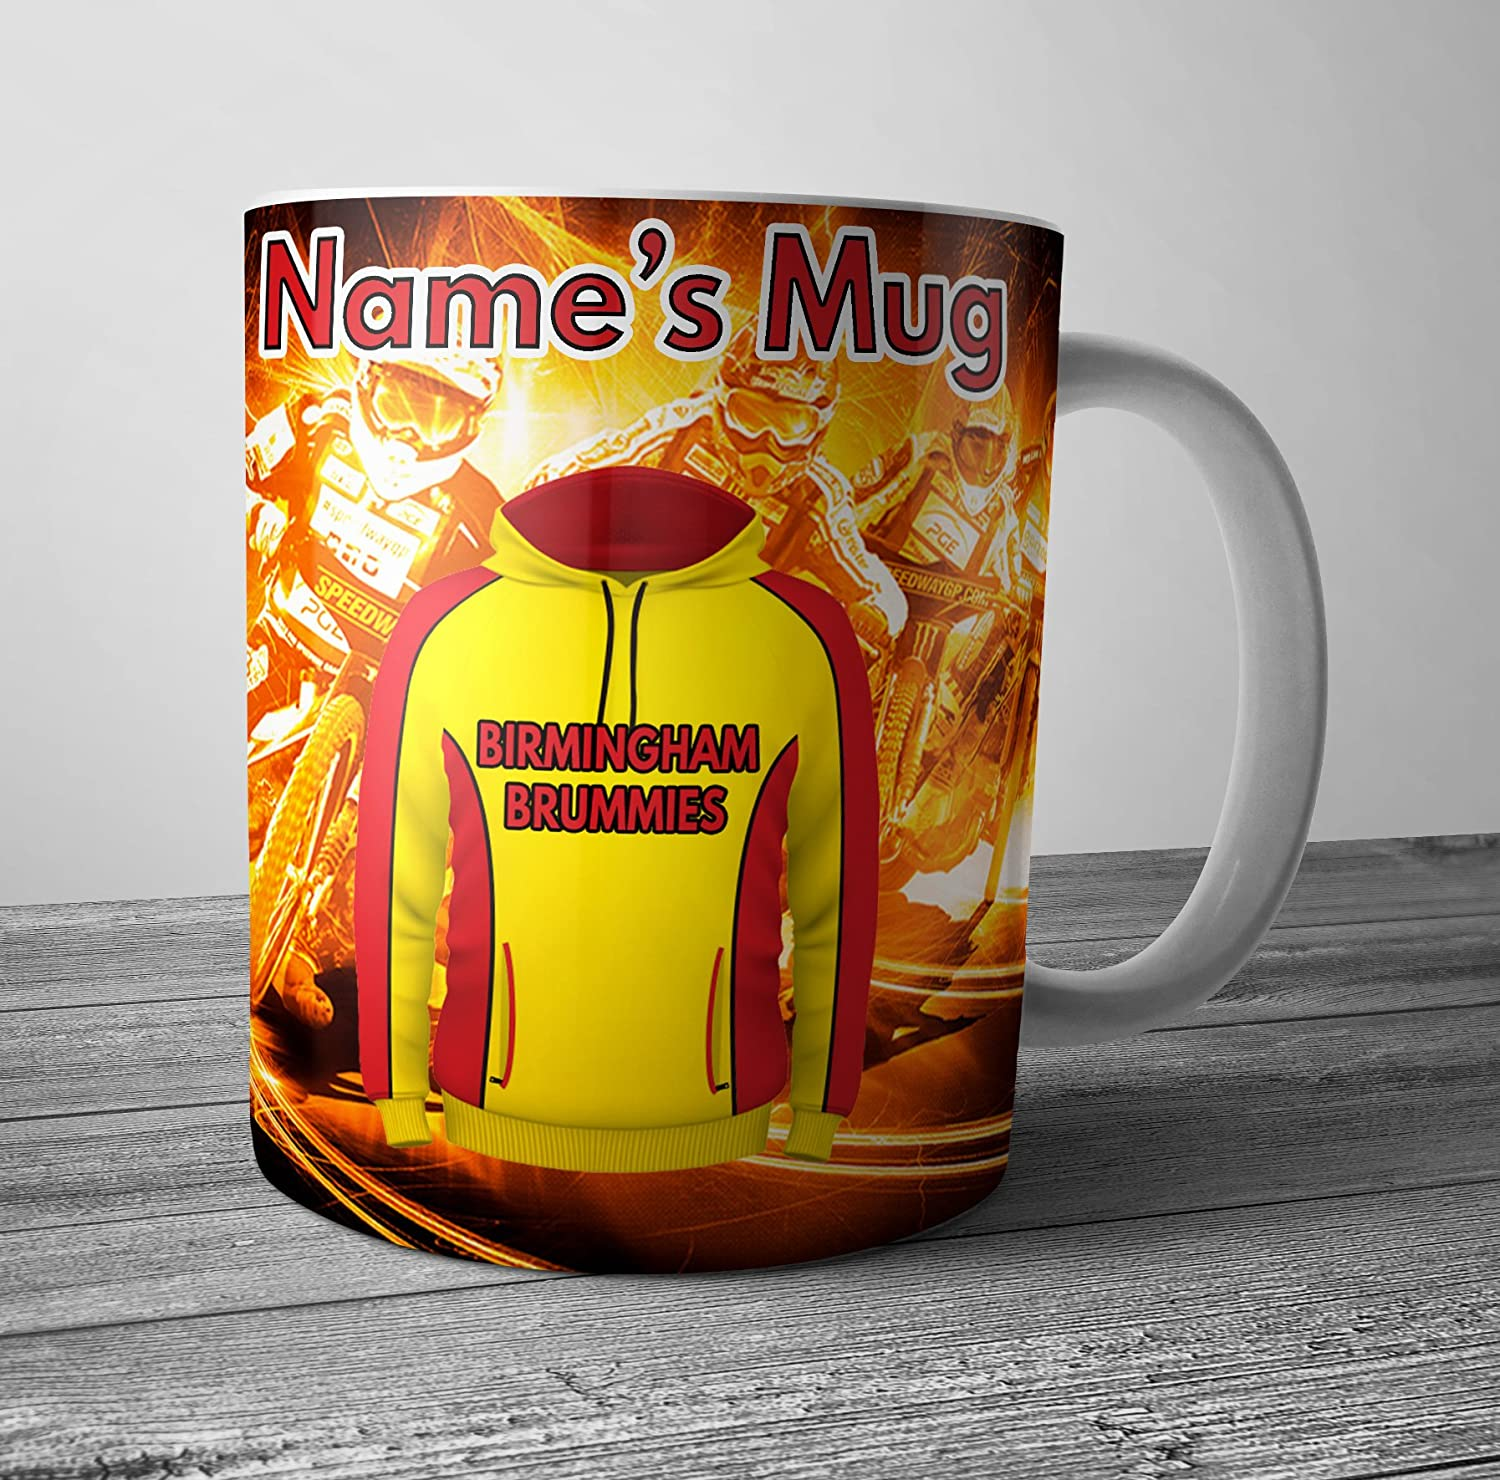 Speedway Birmingham Brummies Mug - Personalised Gift - Add Any Name AK Giftshop Ltd